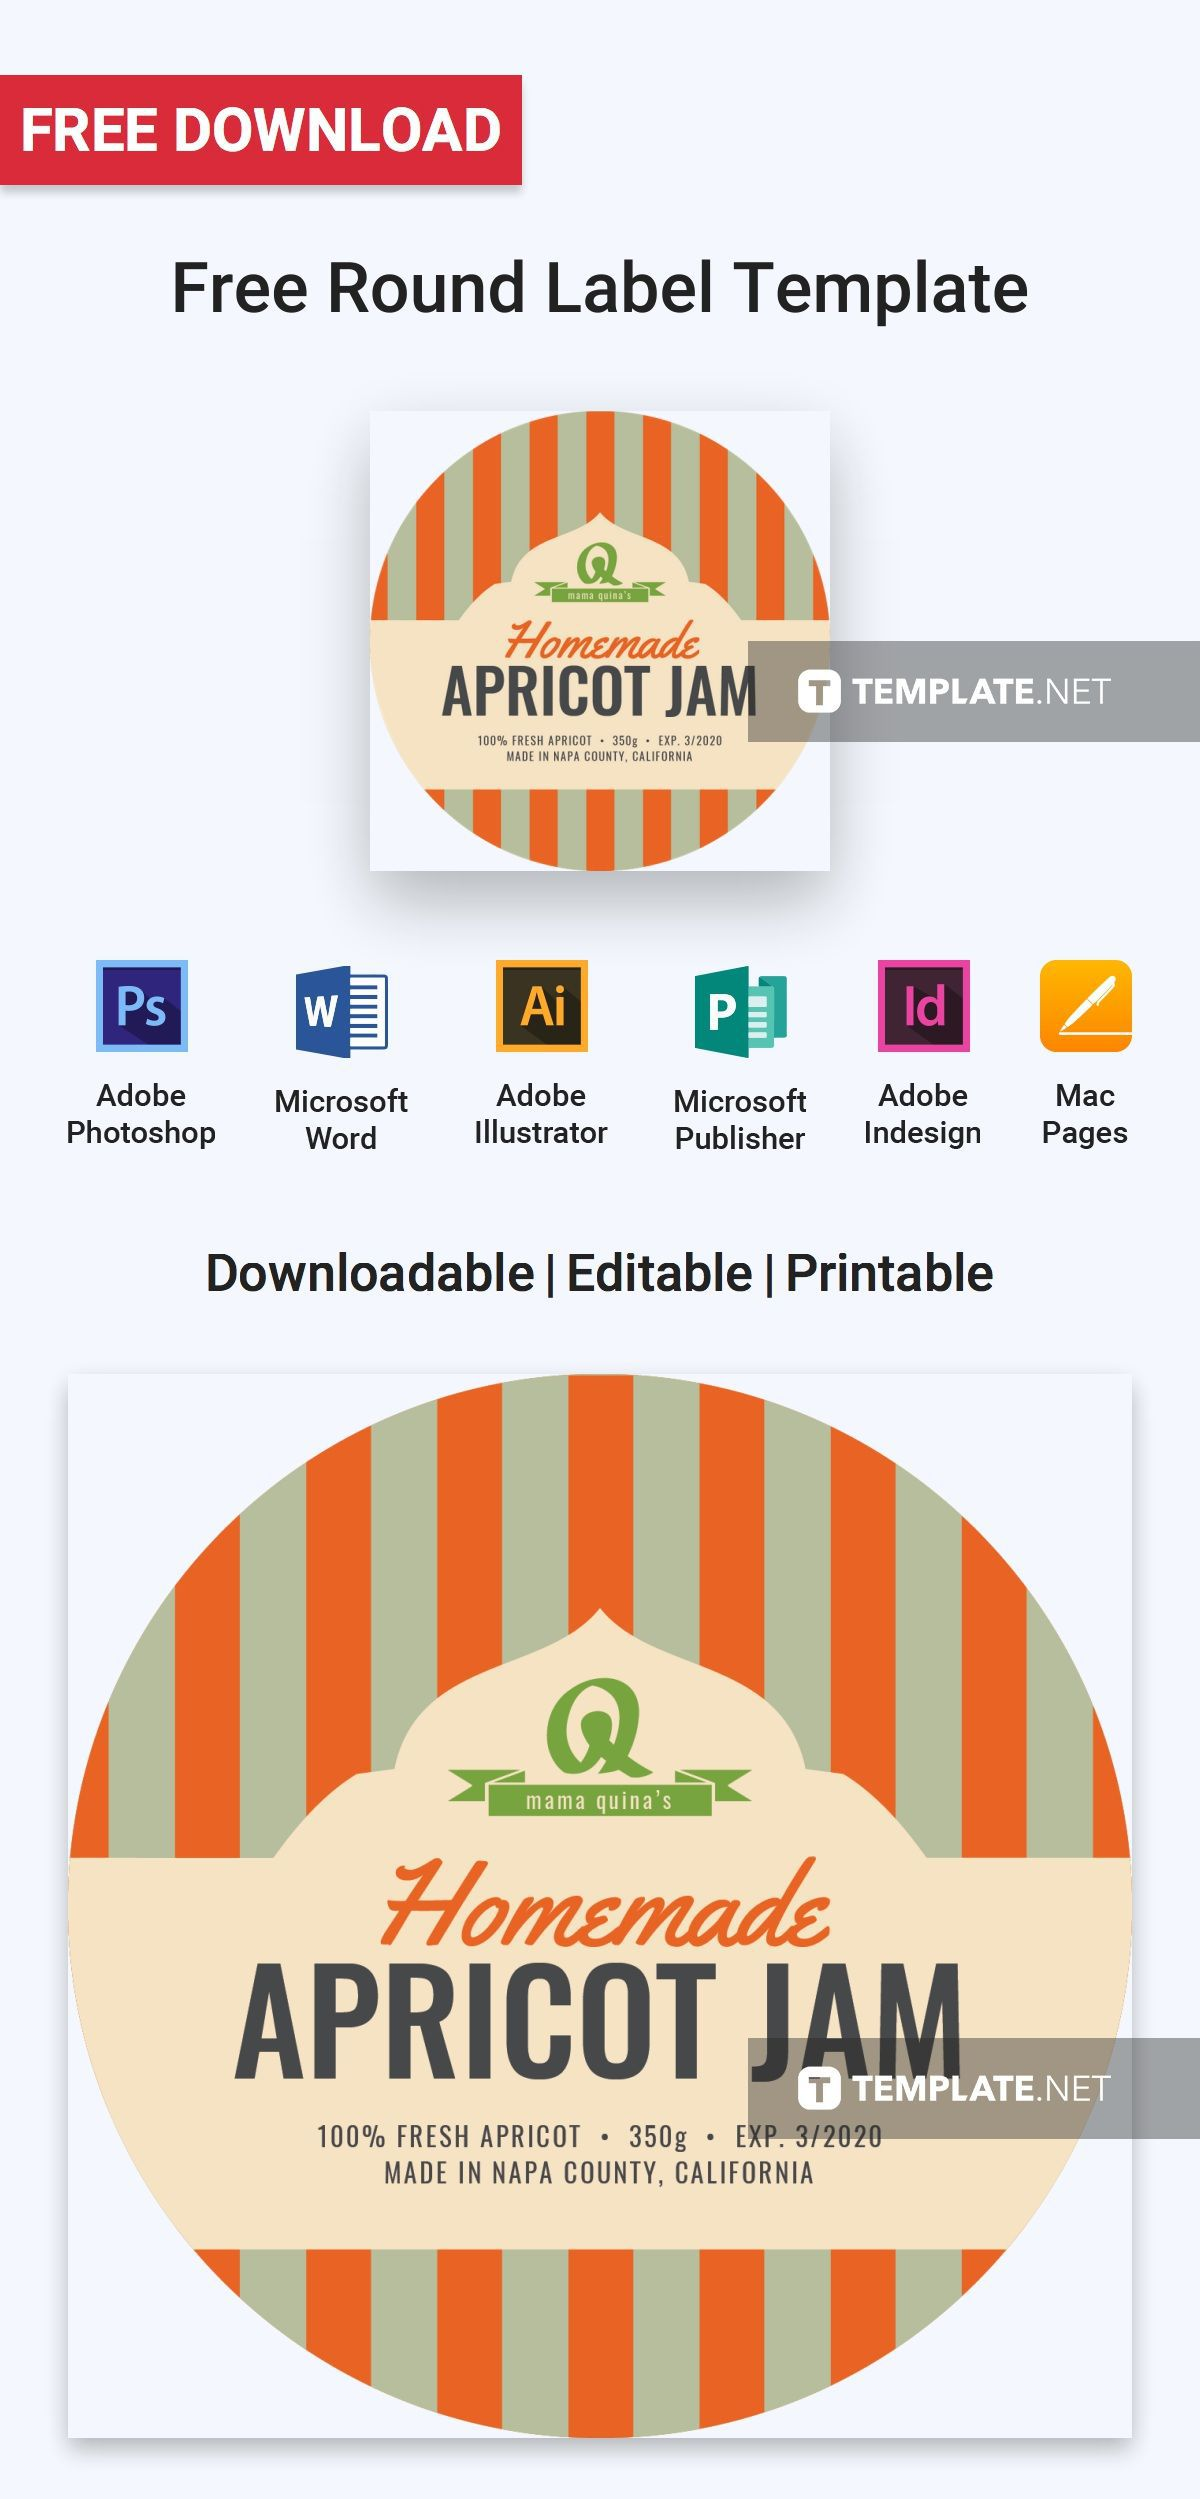 003 Surprising Microsoft Word Label Template Free Download High Definition Full